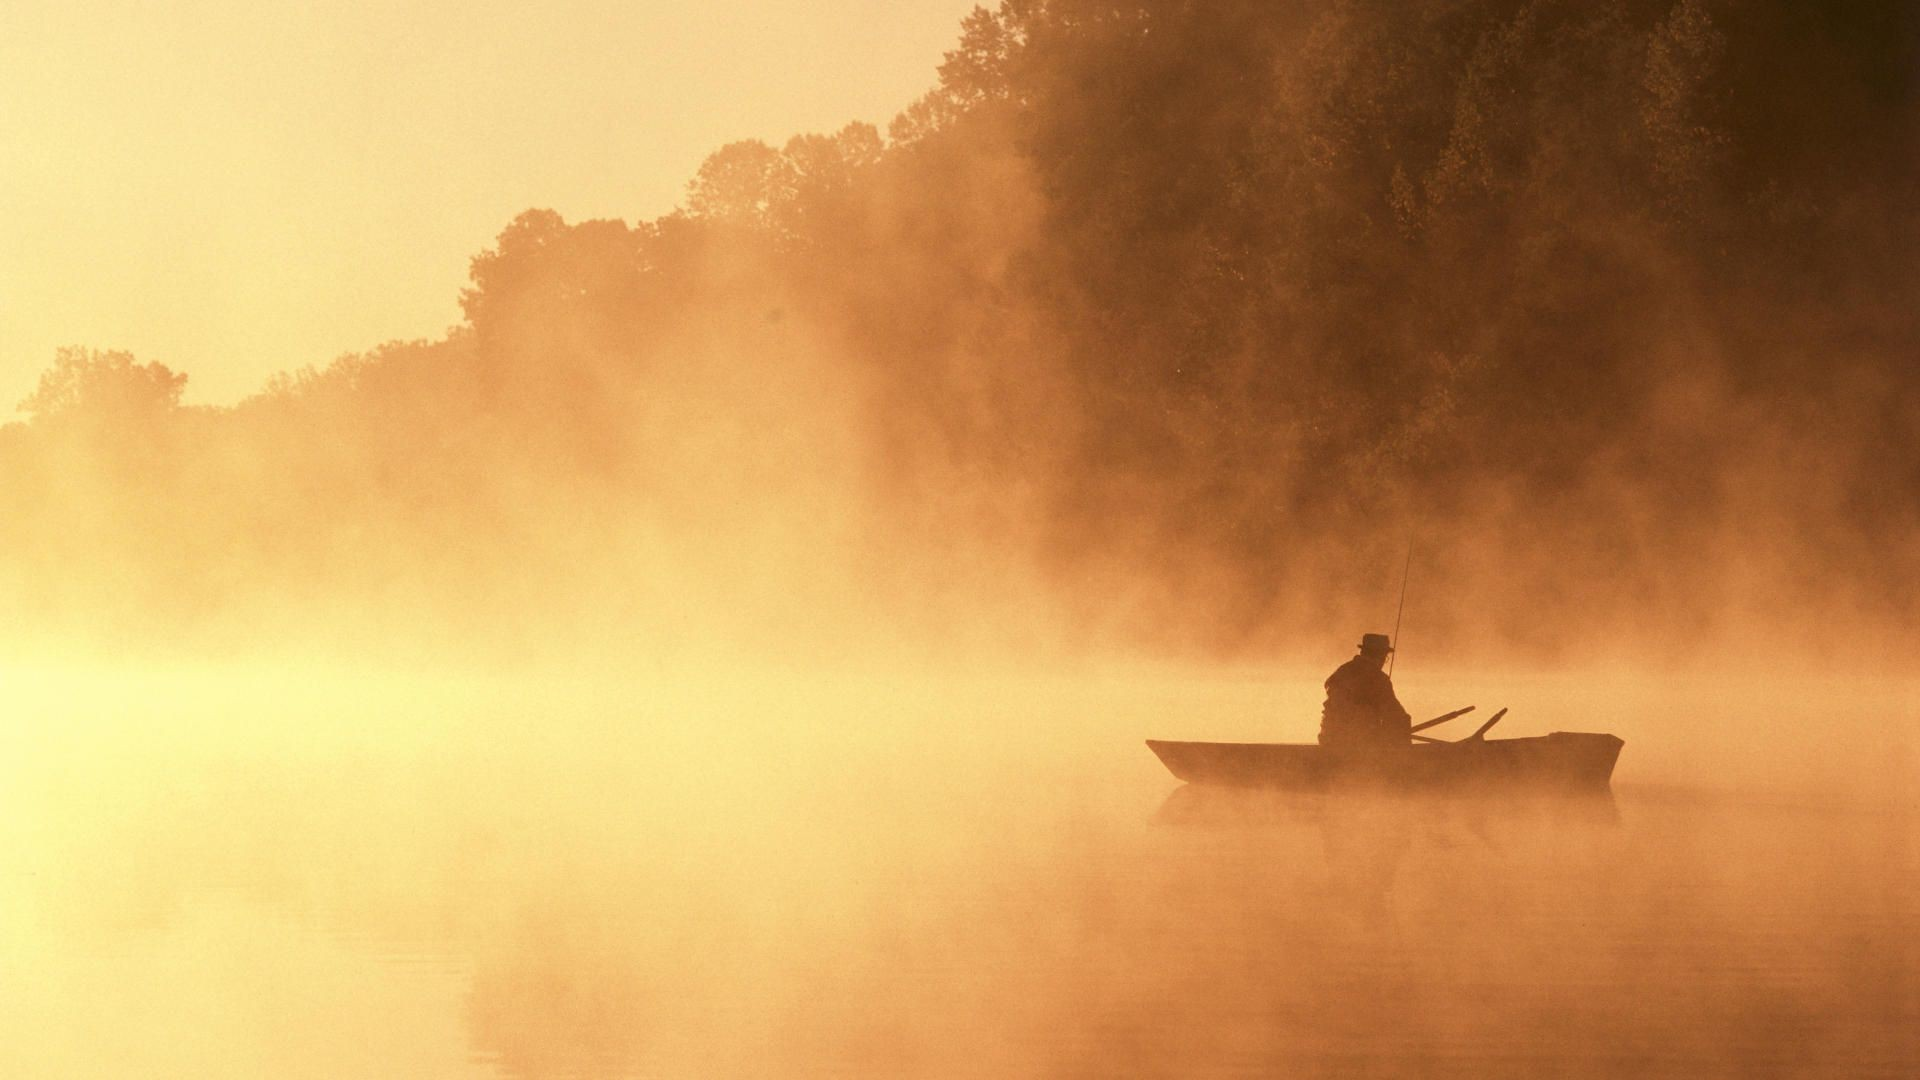 Fishing in The Fog Wallpaper 1920x1080px